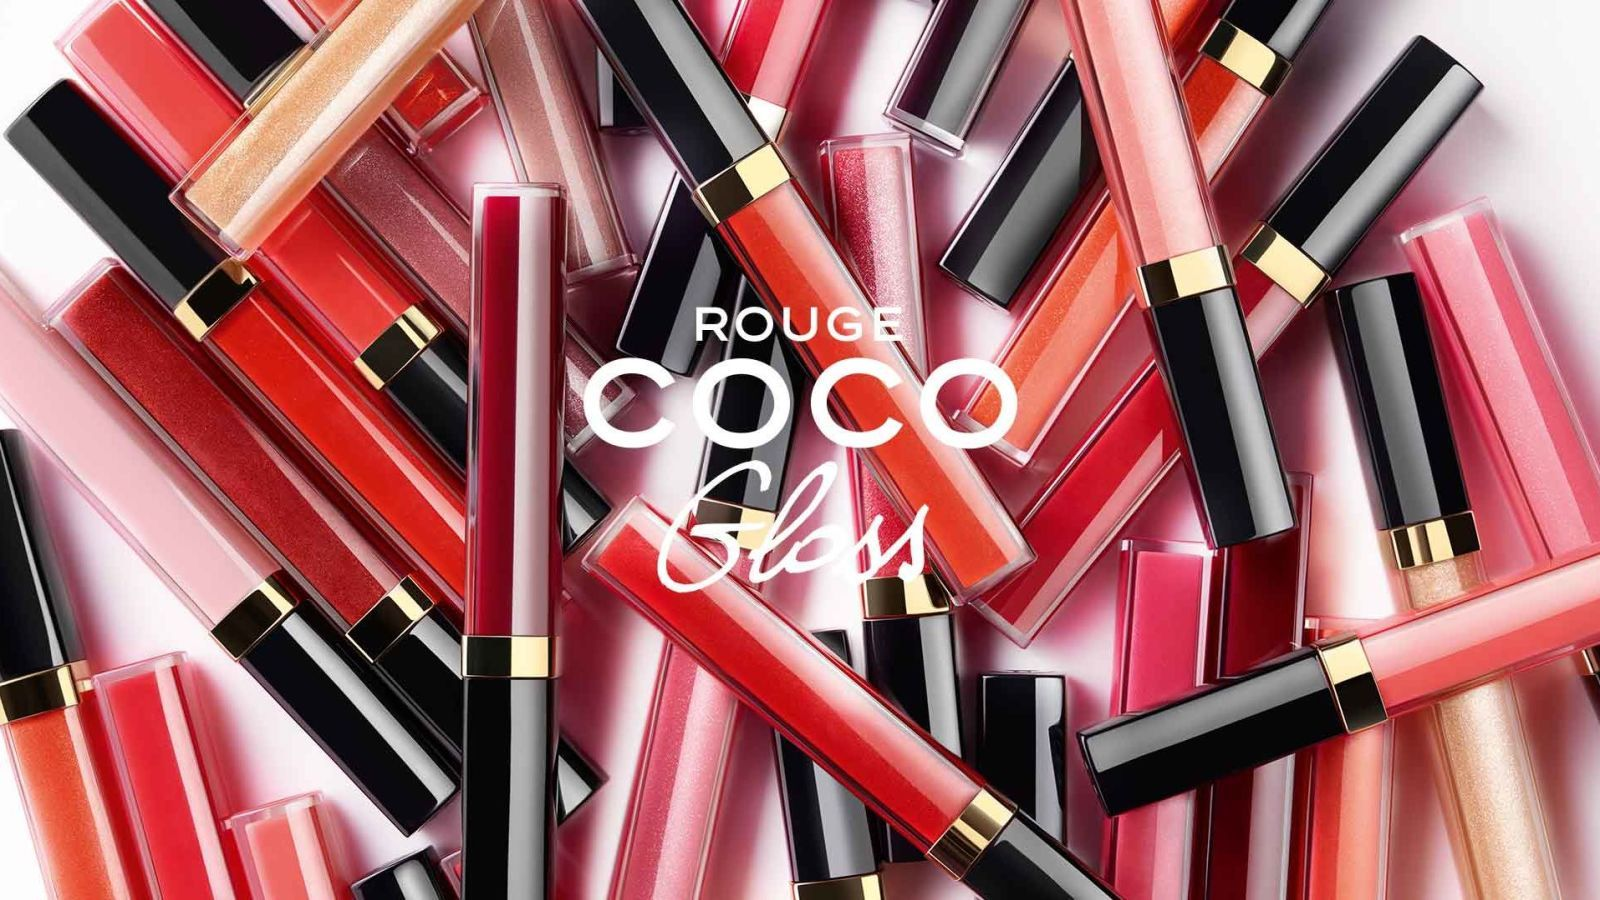 Chanel Lip Gloss Has Been Discontinued—And This Is Why